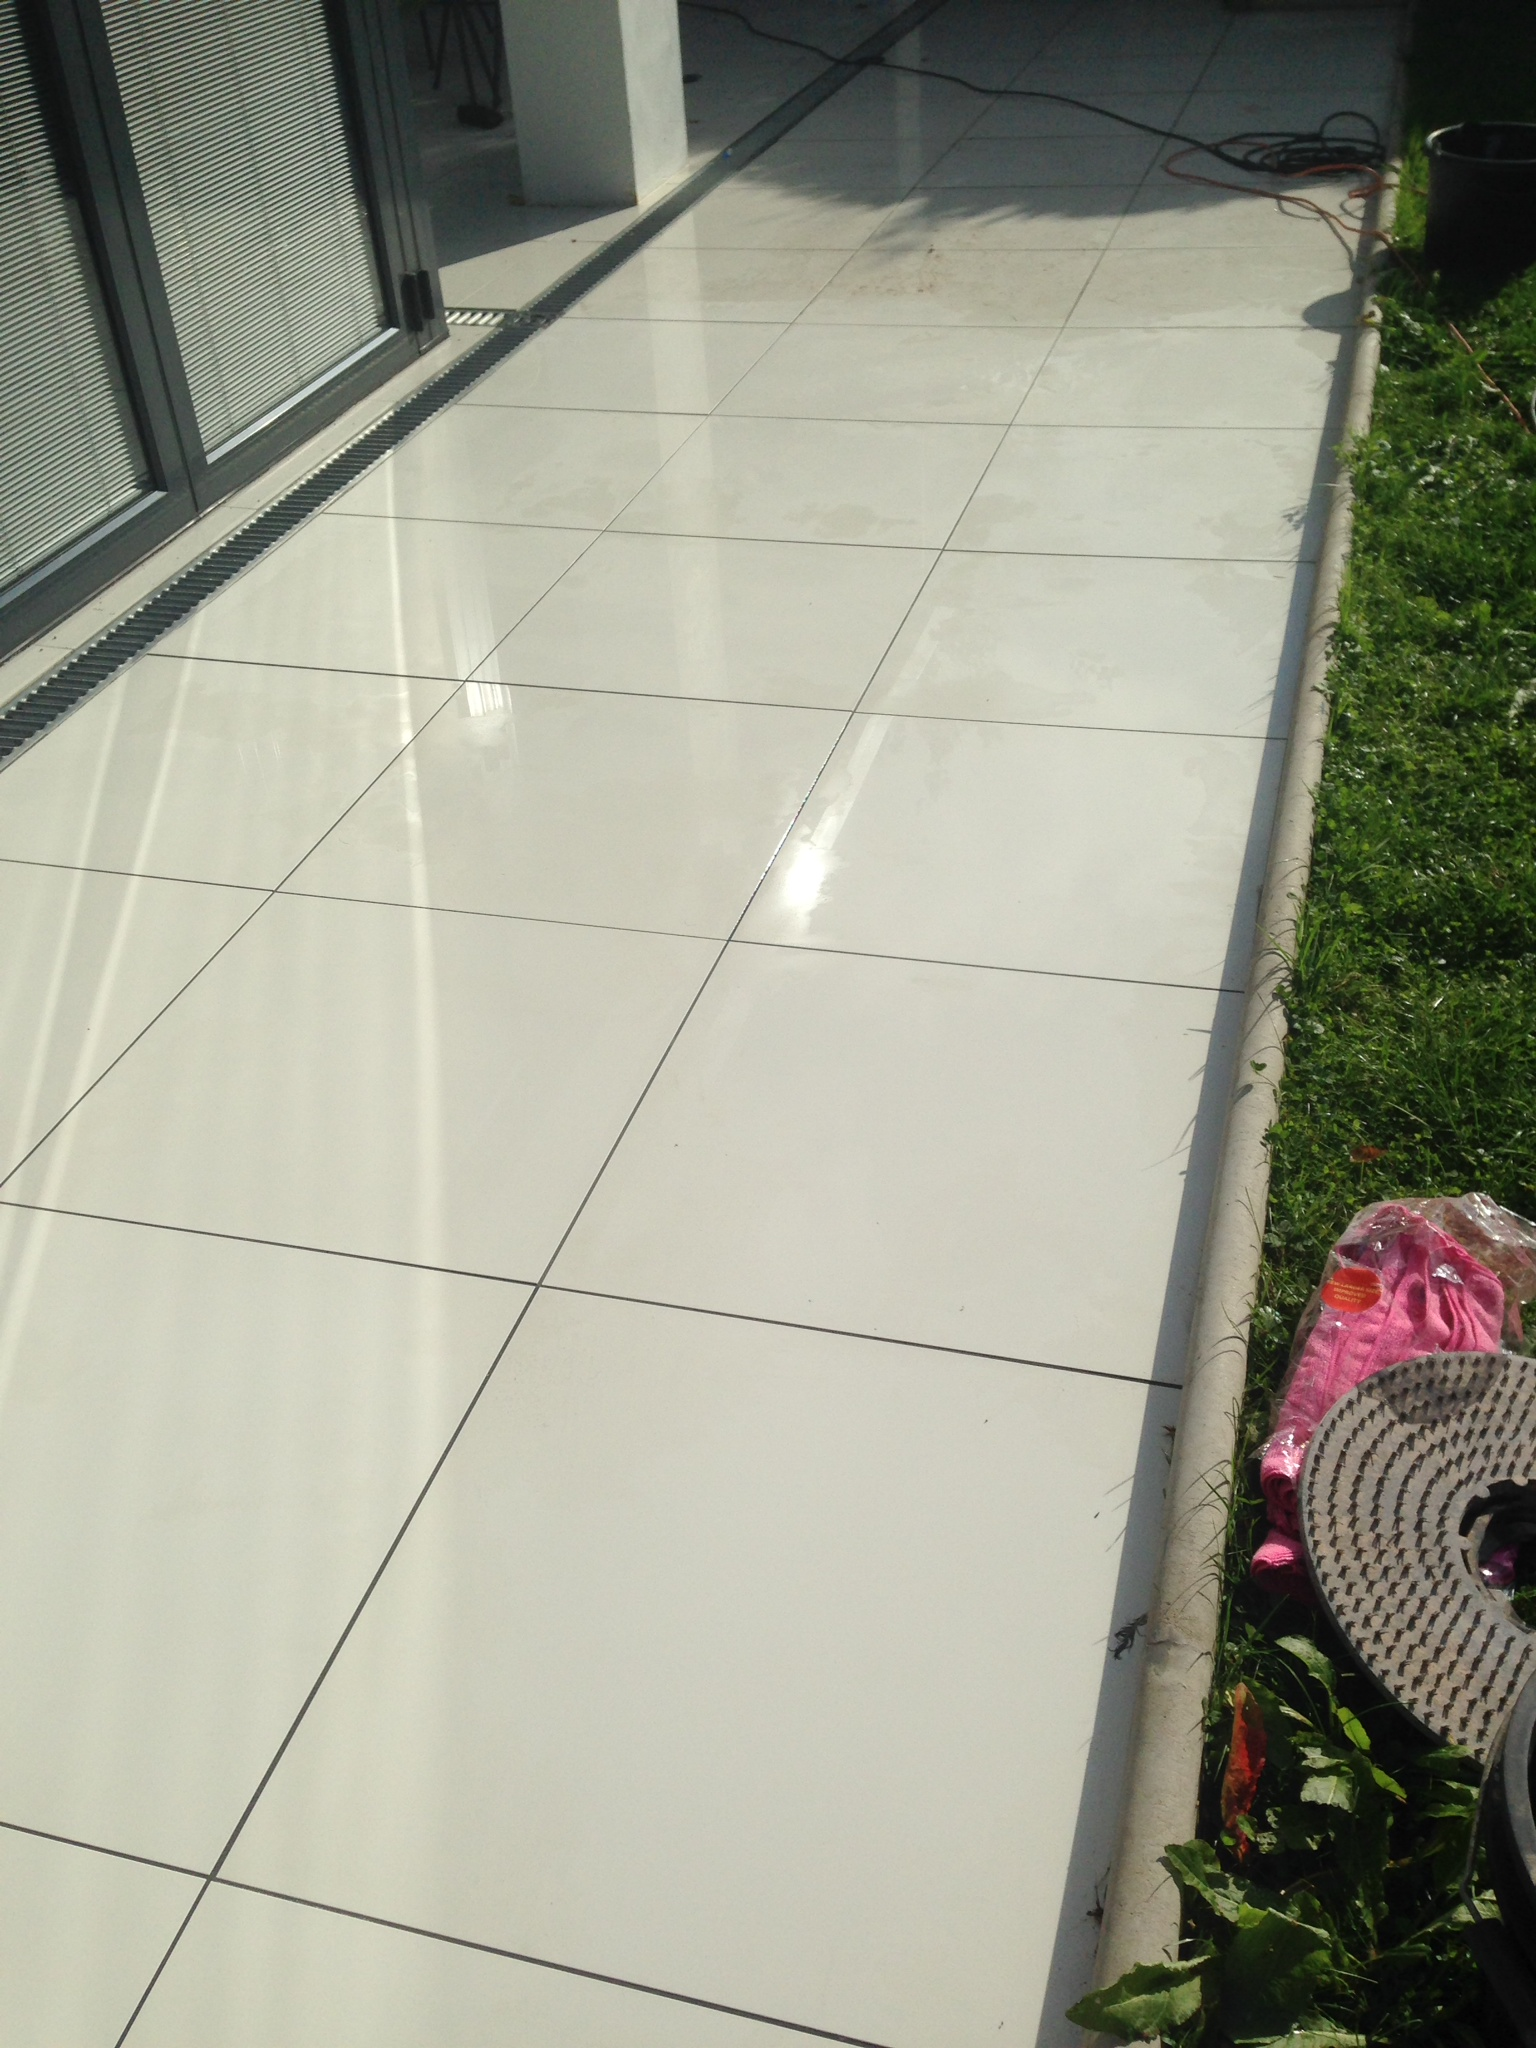 Shiny Slippery Porcelain Tiles in Ashtead41